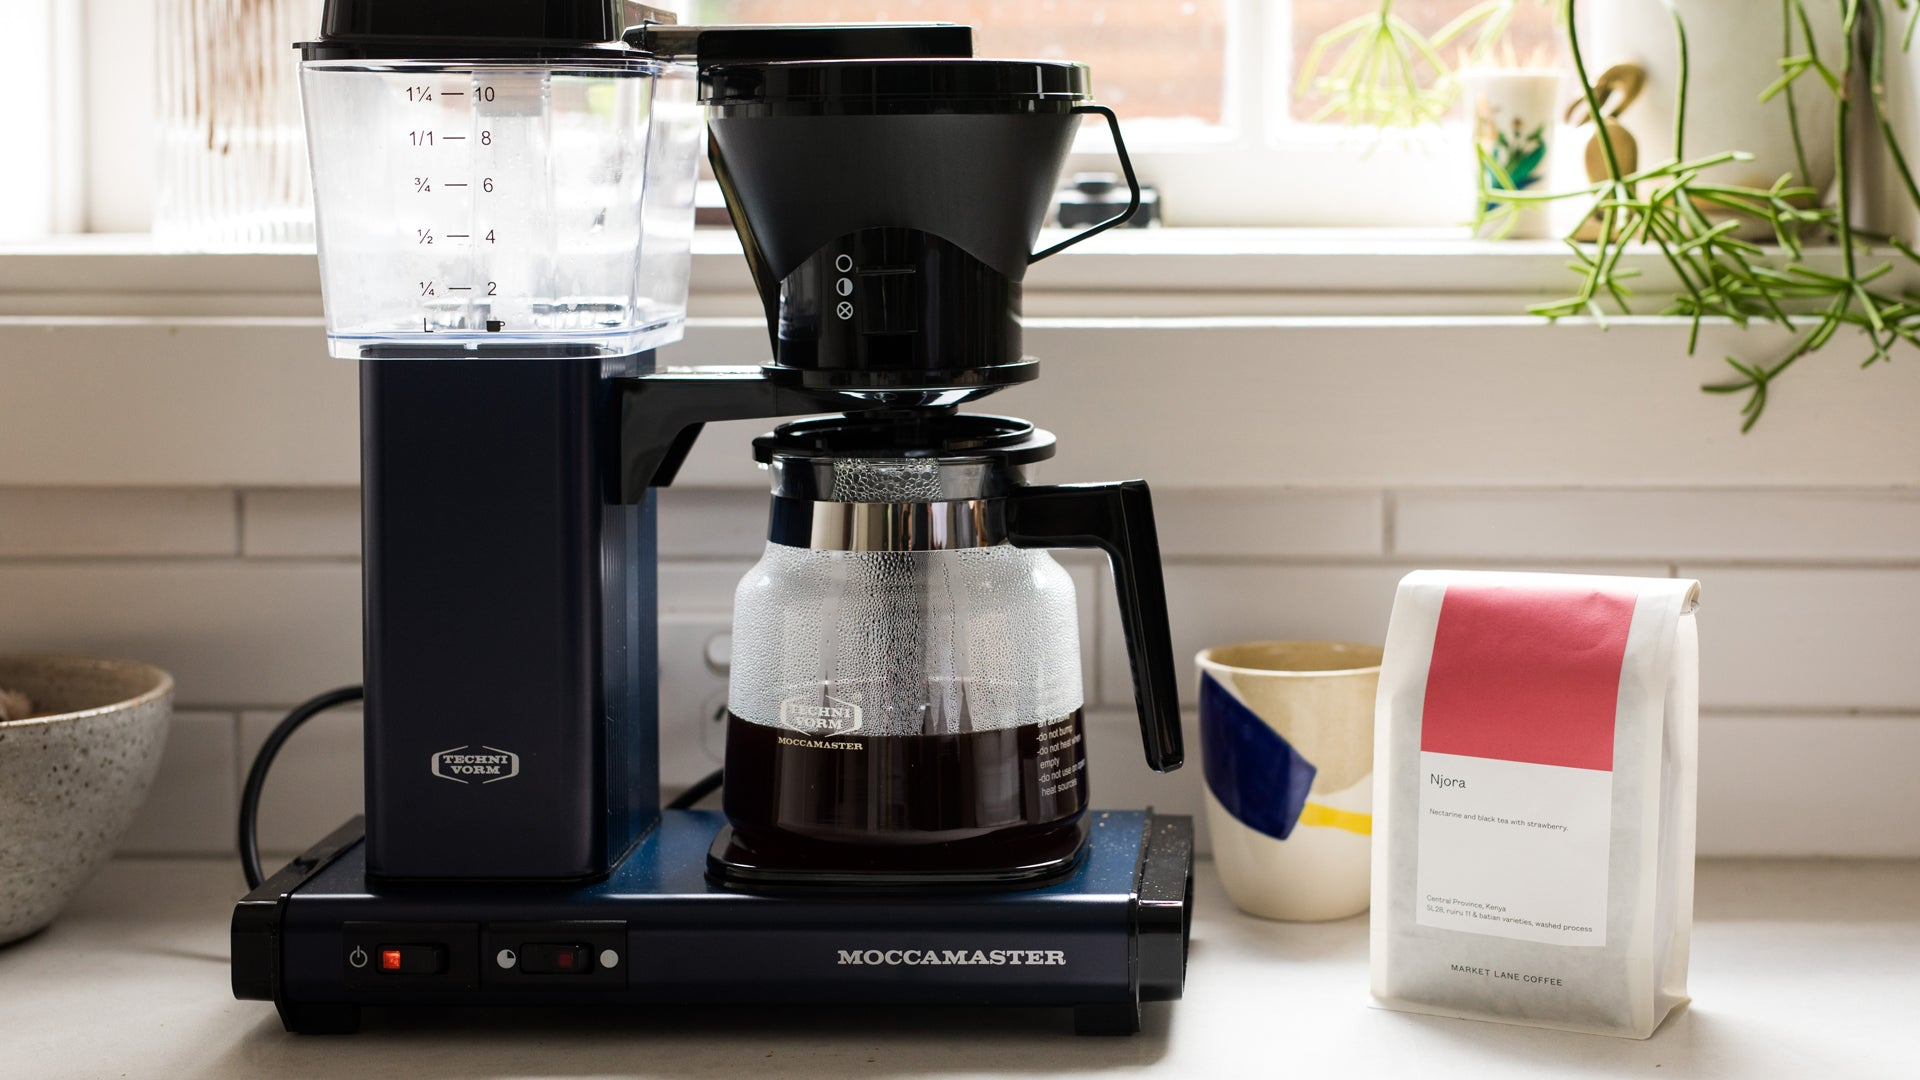 A moccamaster with a fresh batch of coffee made using our recipe for how to make coffee using a Moccamaster